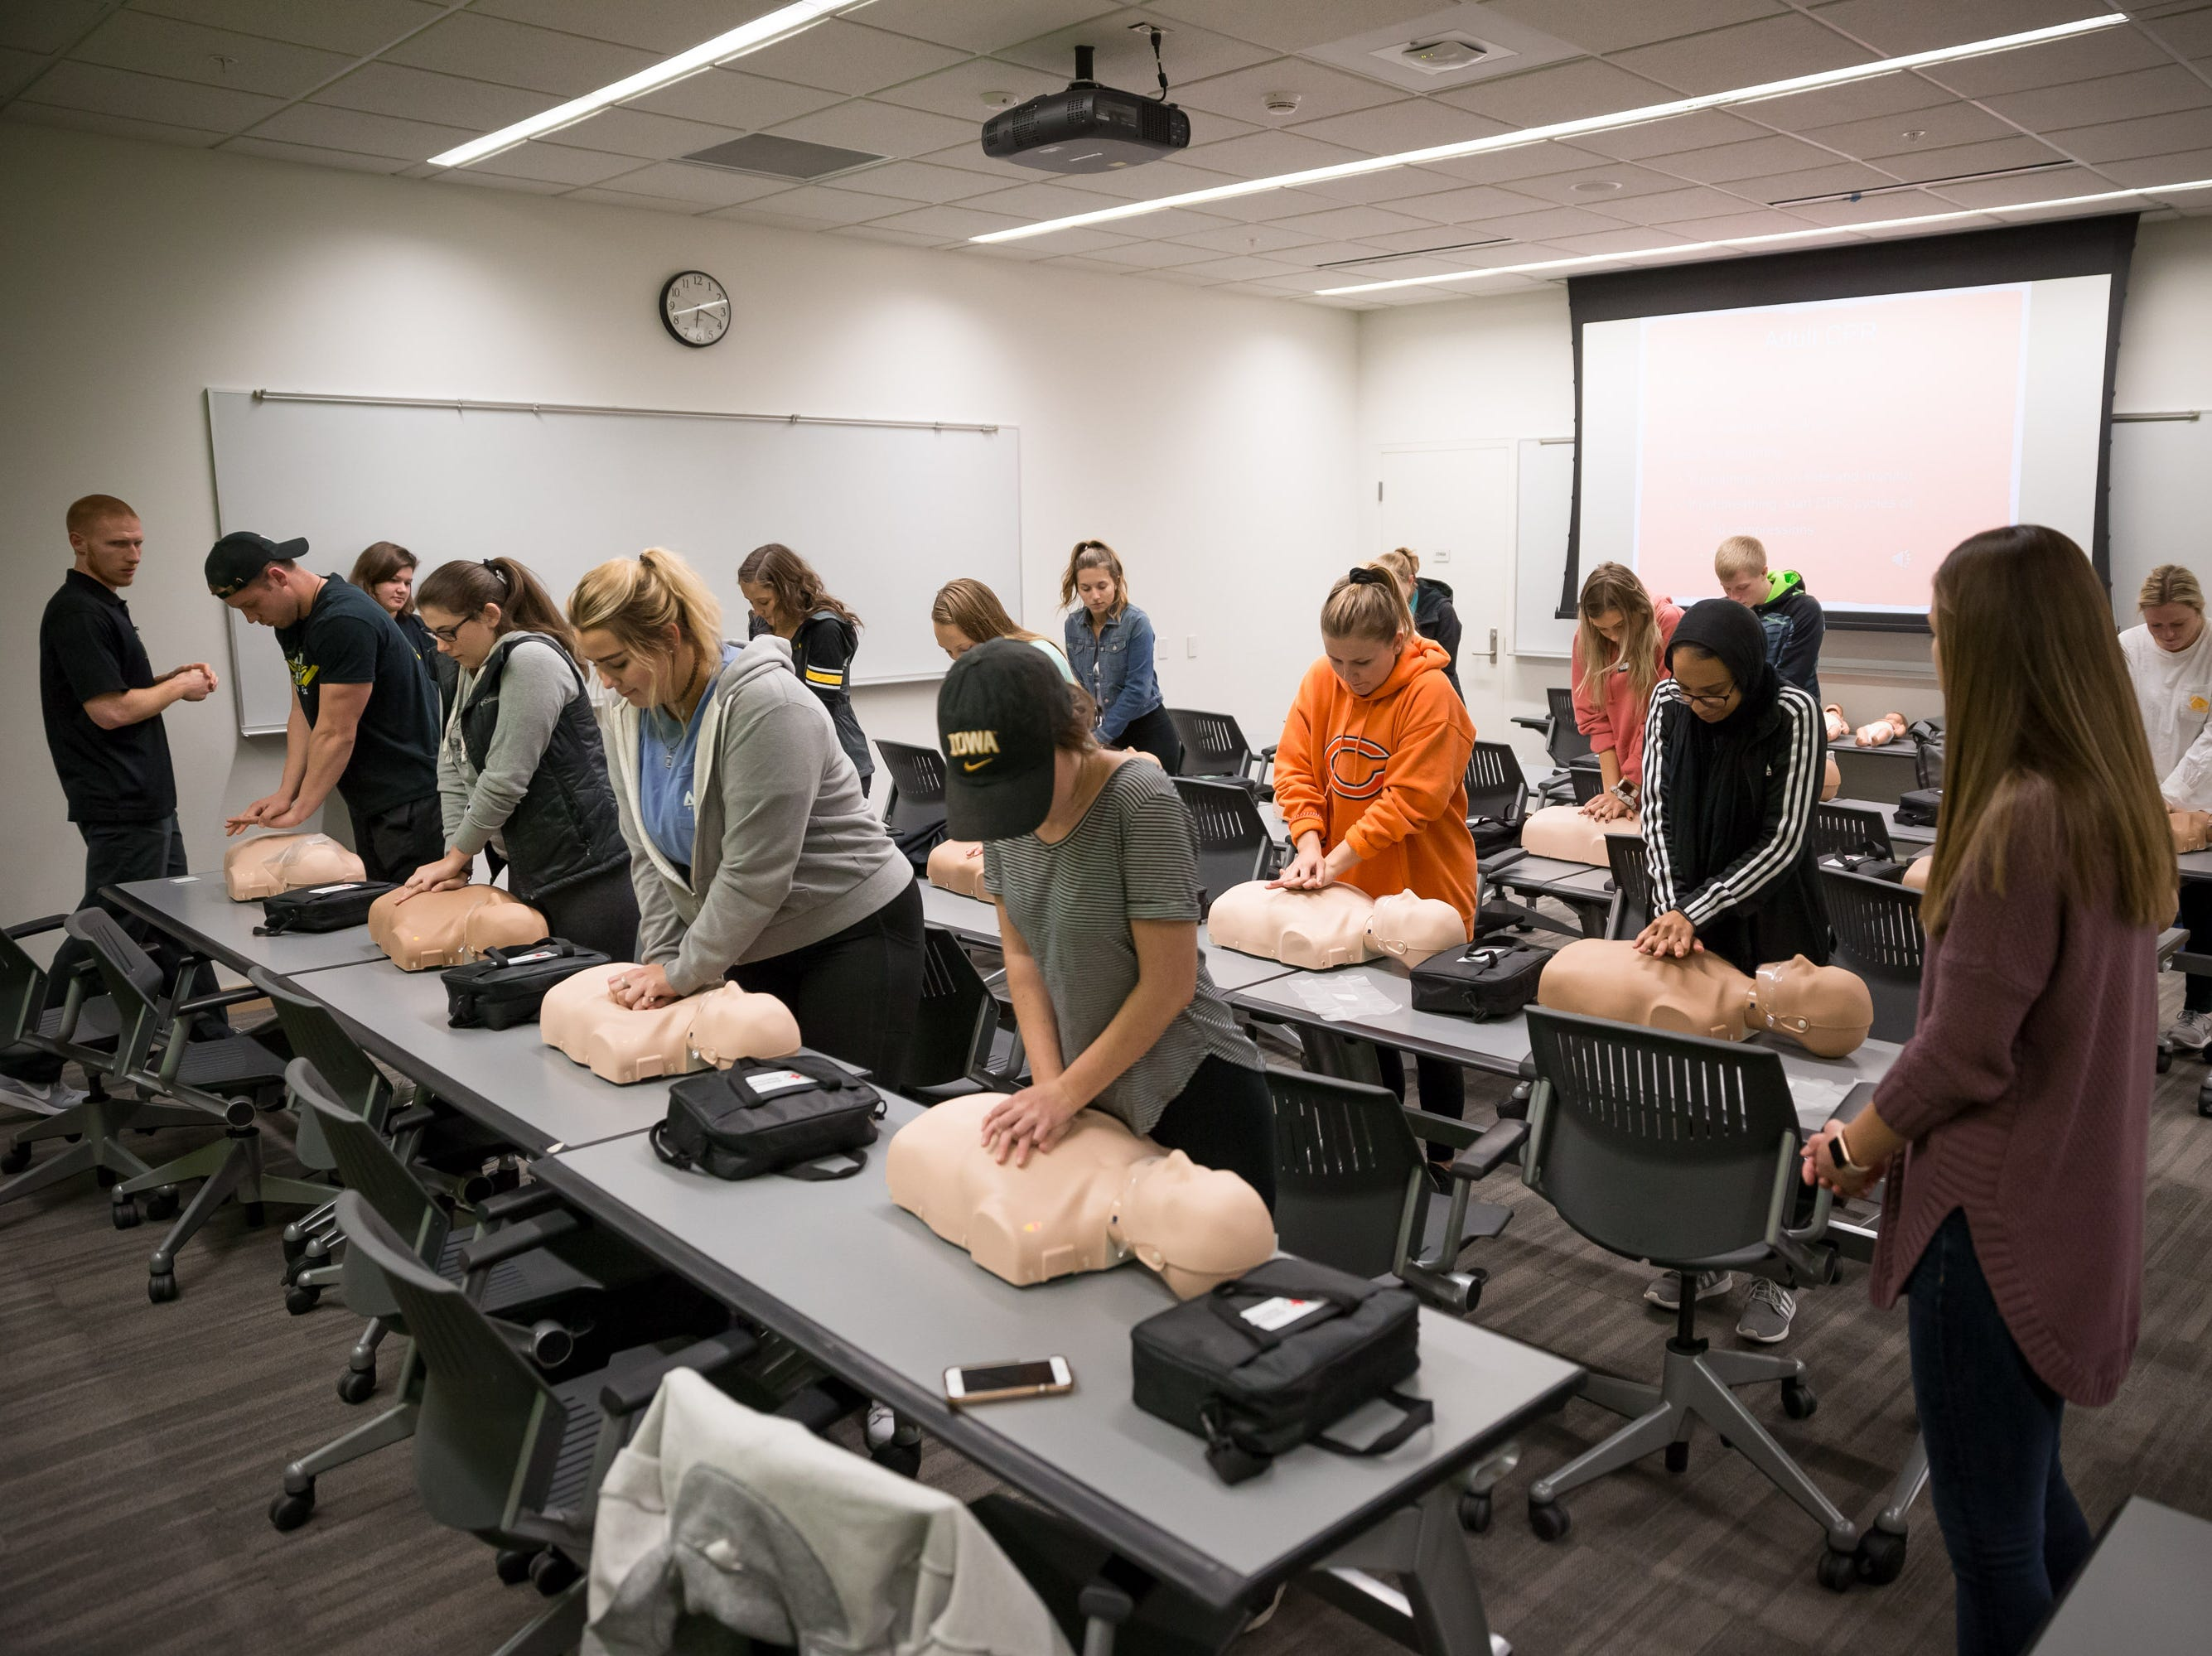 UI students practice CPR compressions on test dummies at the UI Campus Recreation & Wellness Center on Monday, October 29, 2018. Bill Adams/Freelance